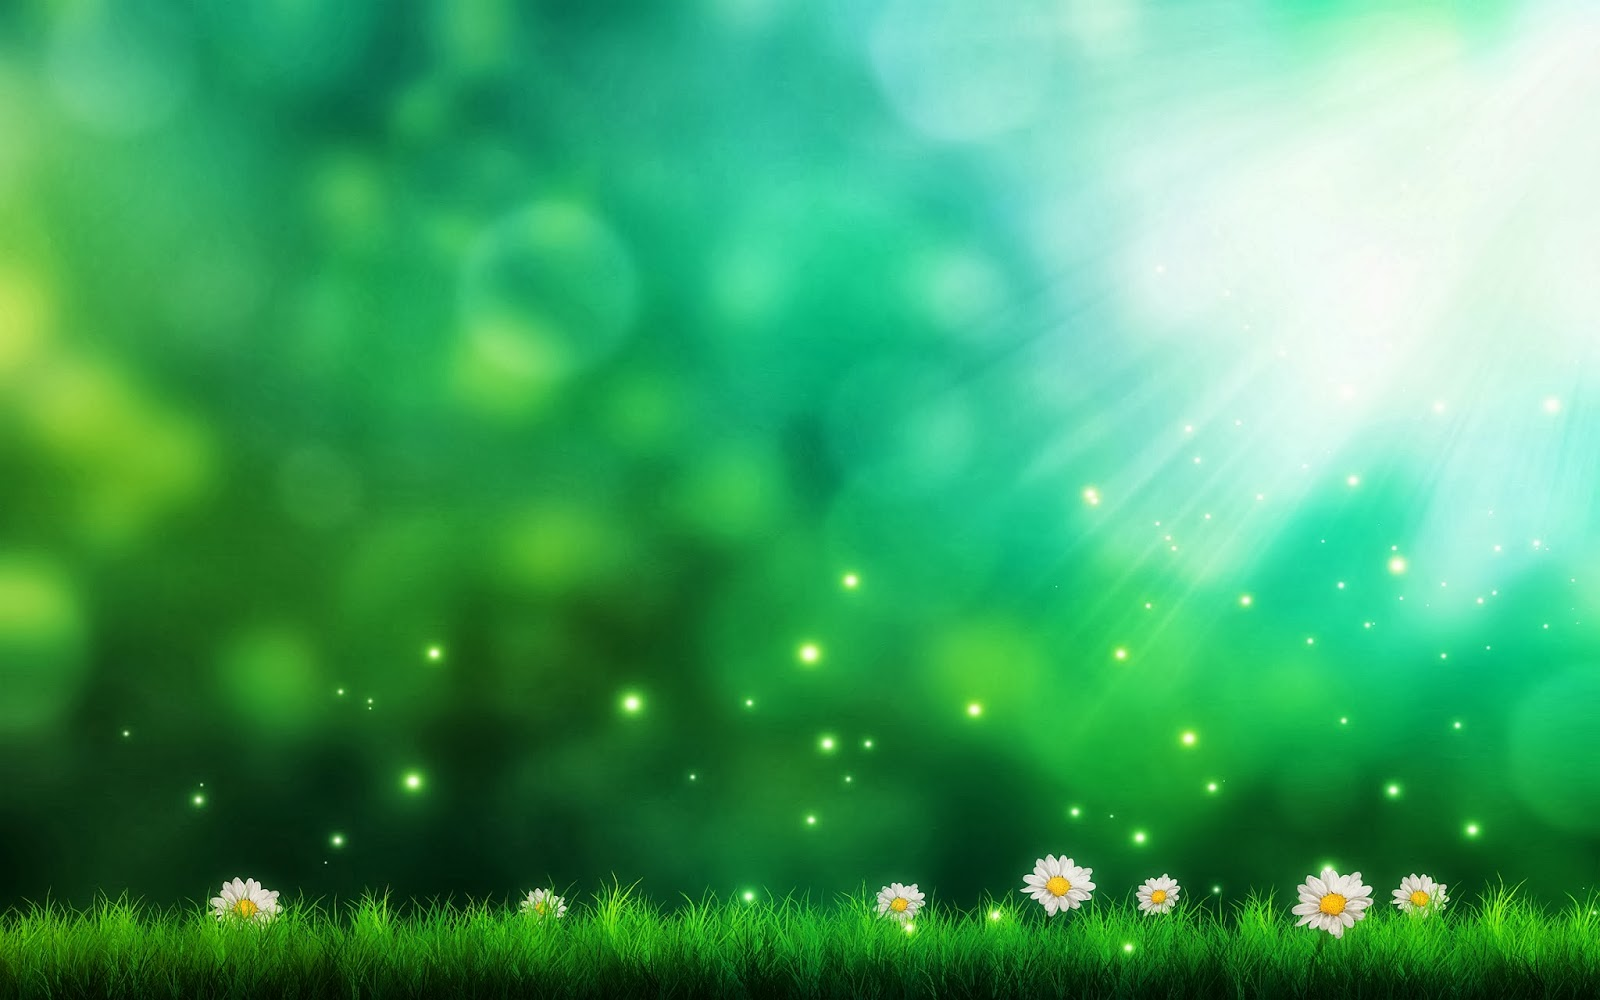 HD Wallpapers Desktop: Green Background HD DeskTop Wallpapers